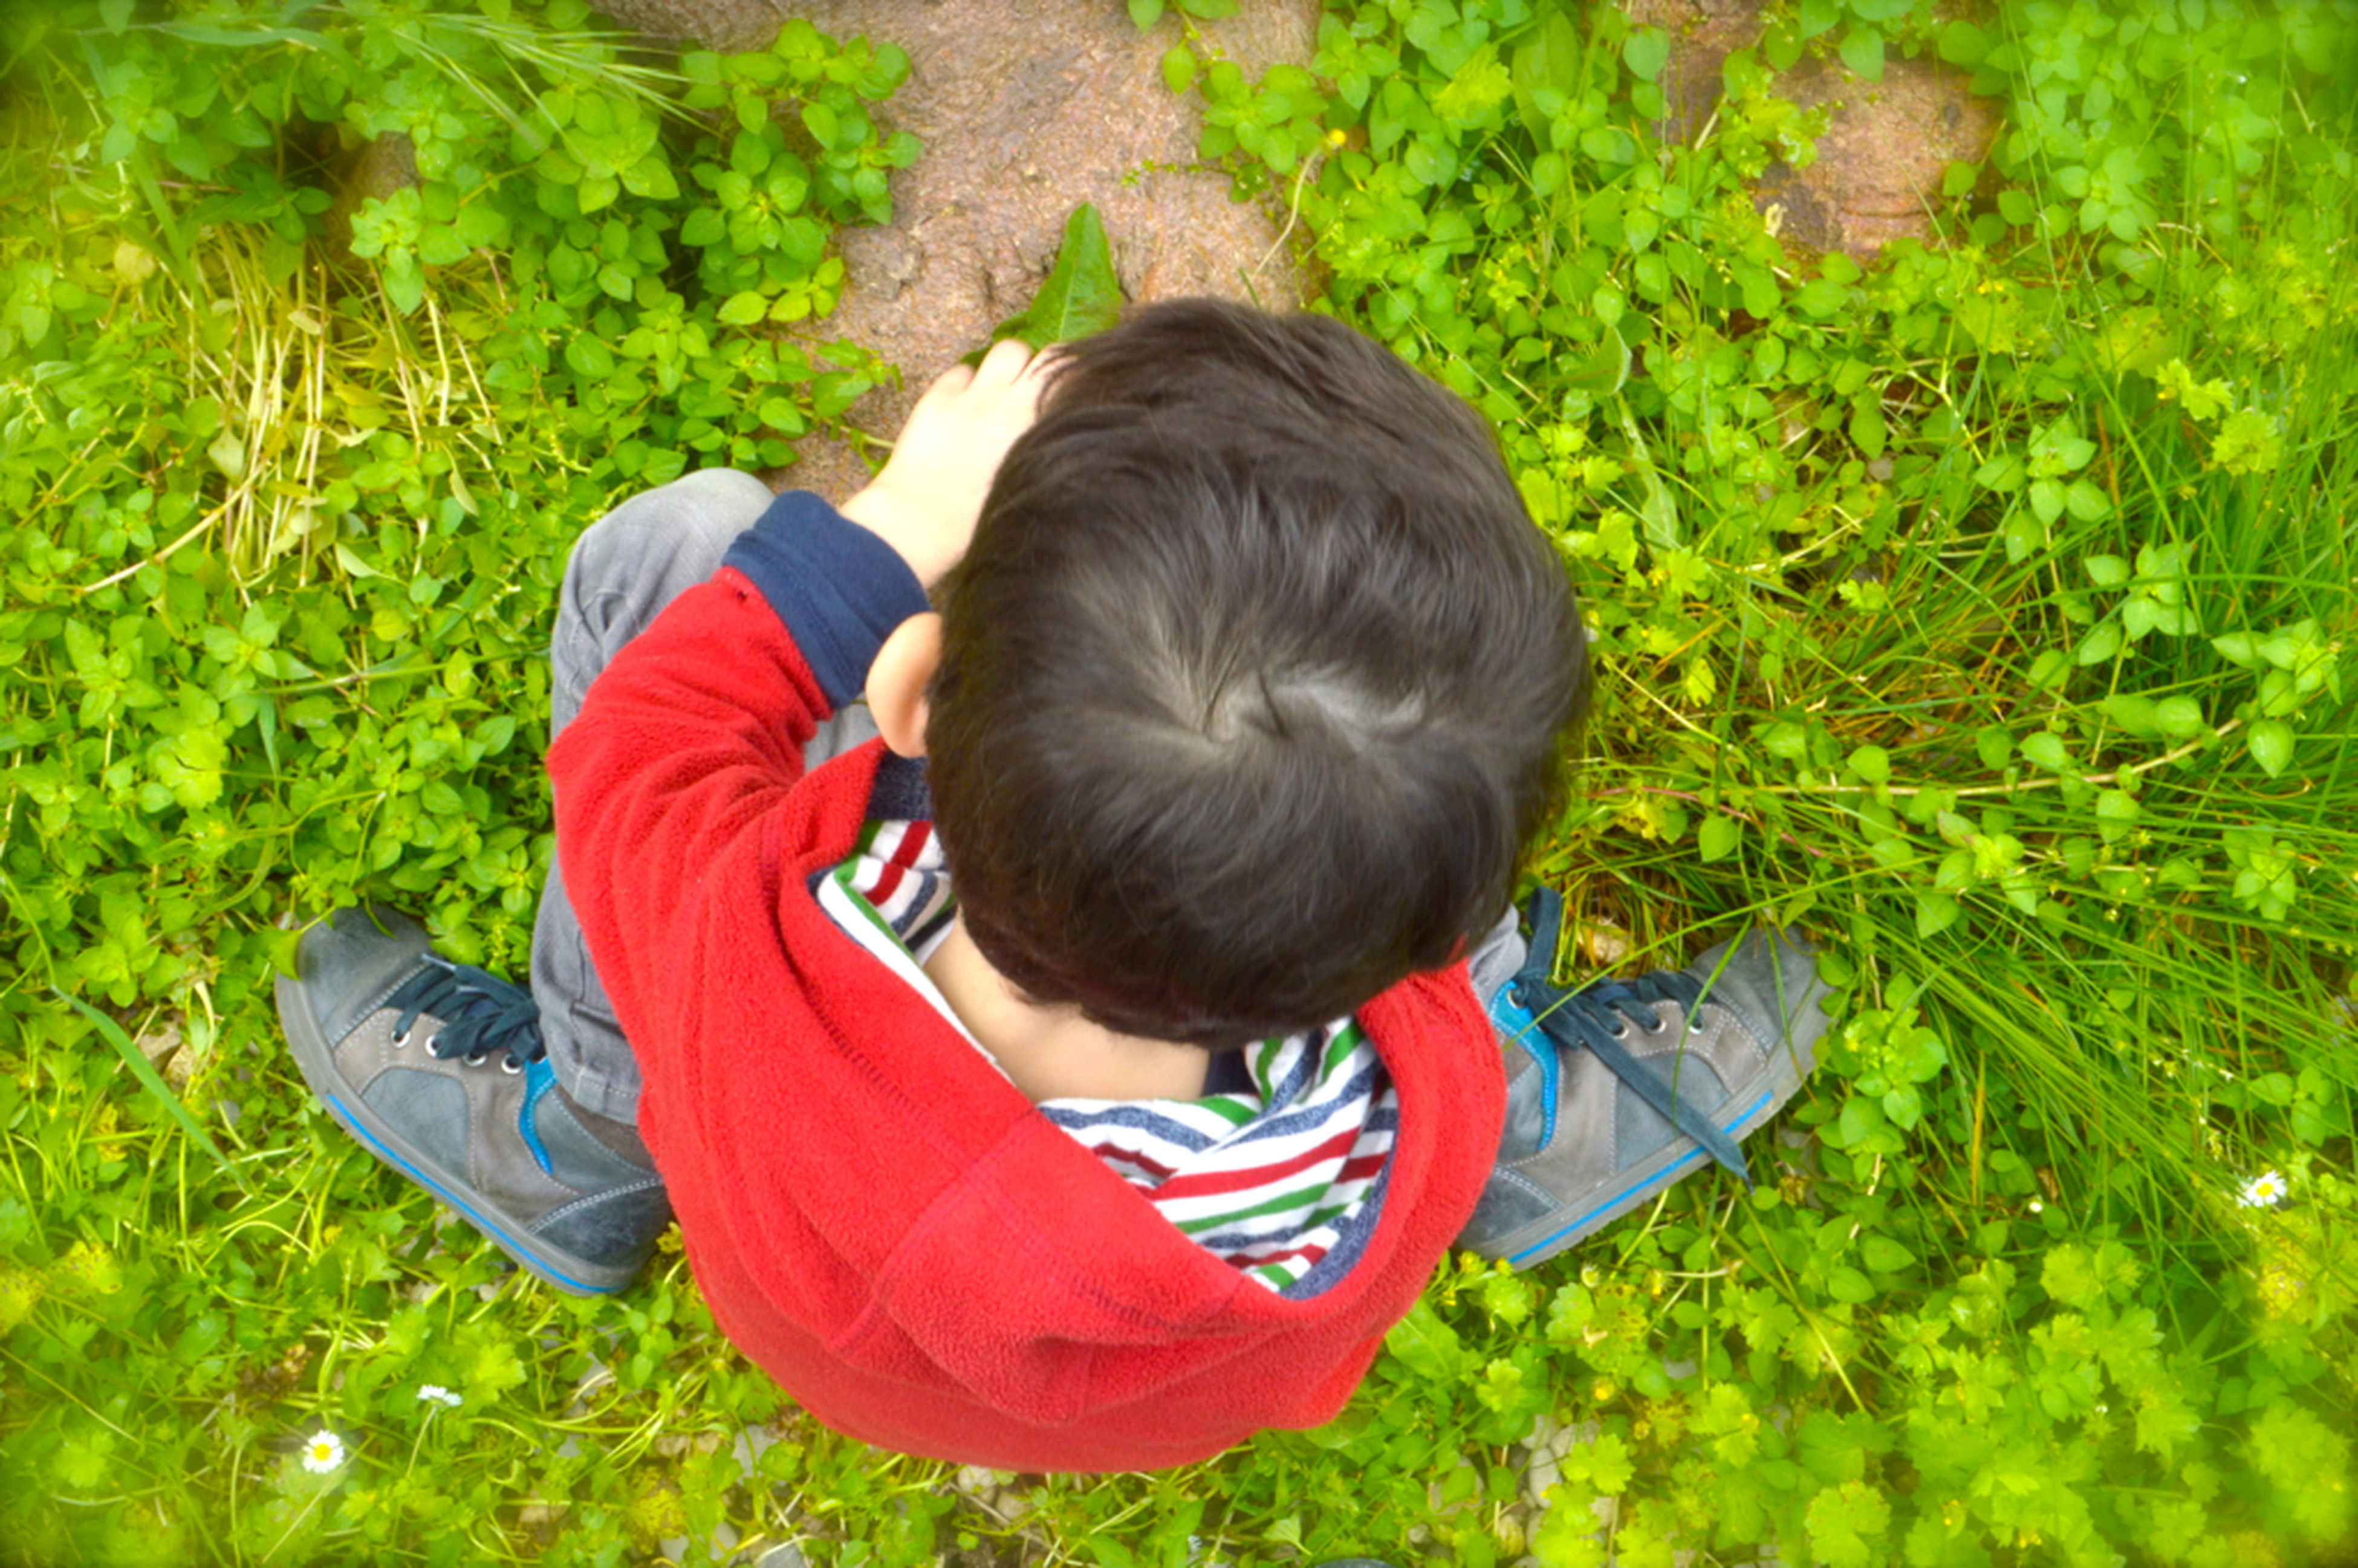 green color, rear view, childhood, headshot, black hair, holding, casual clothing, plant, innocence, curiosity, day, red, getting away from it all